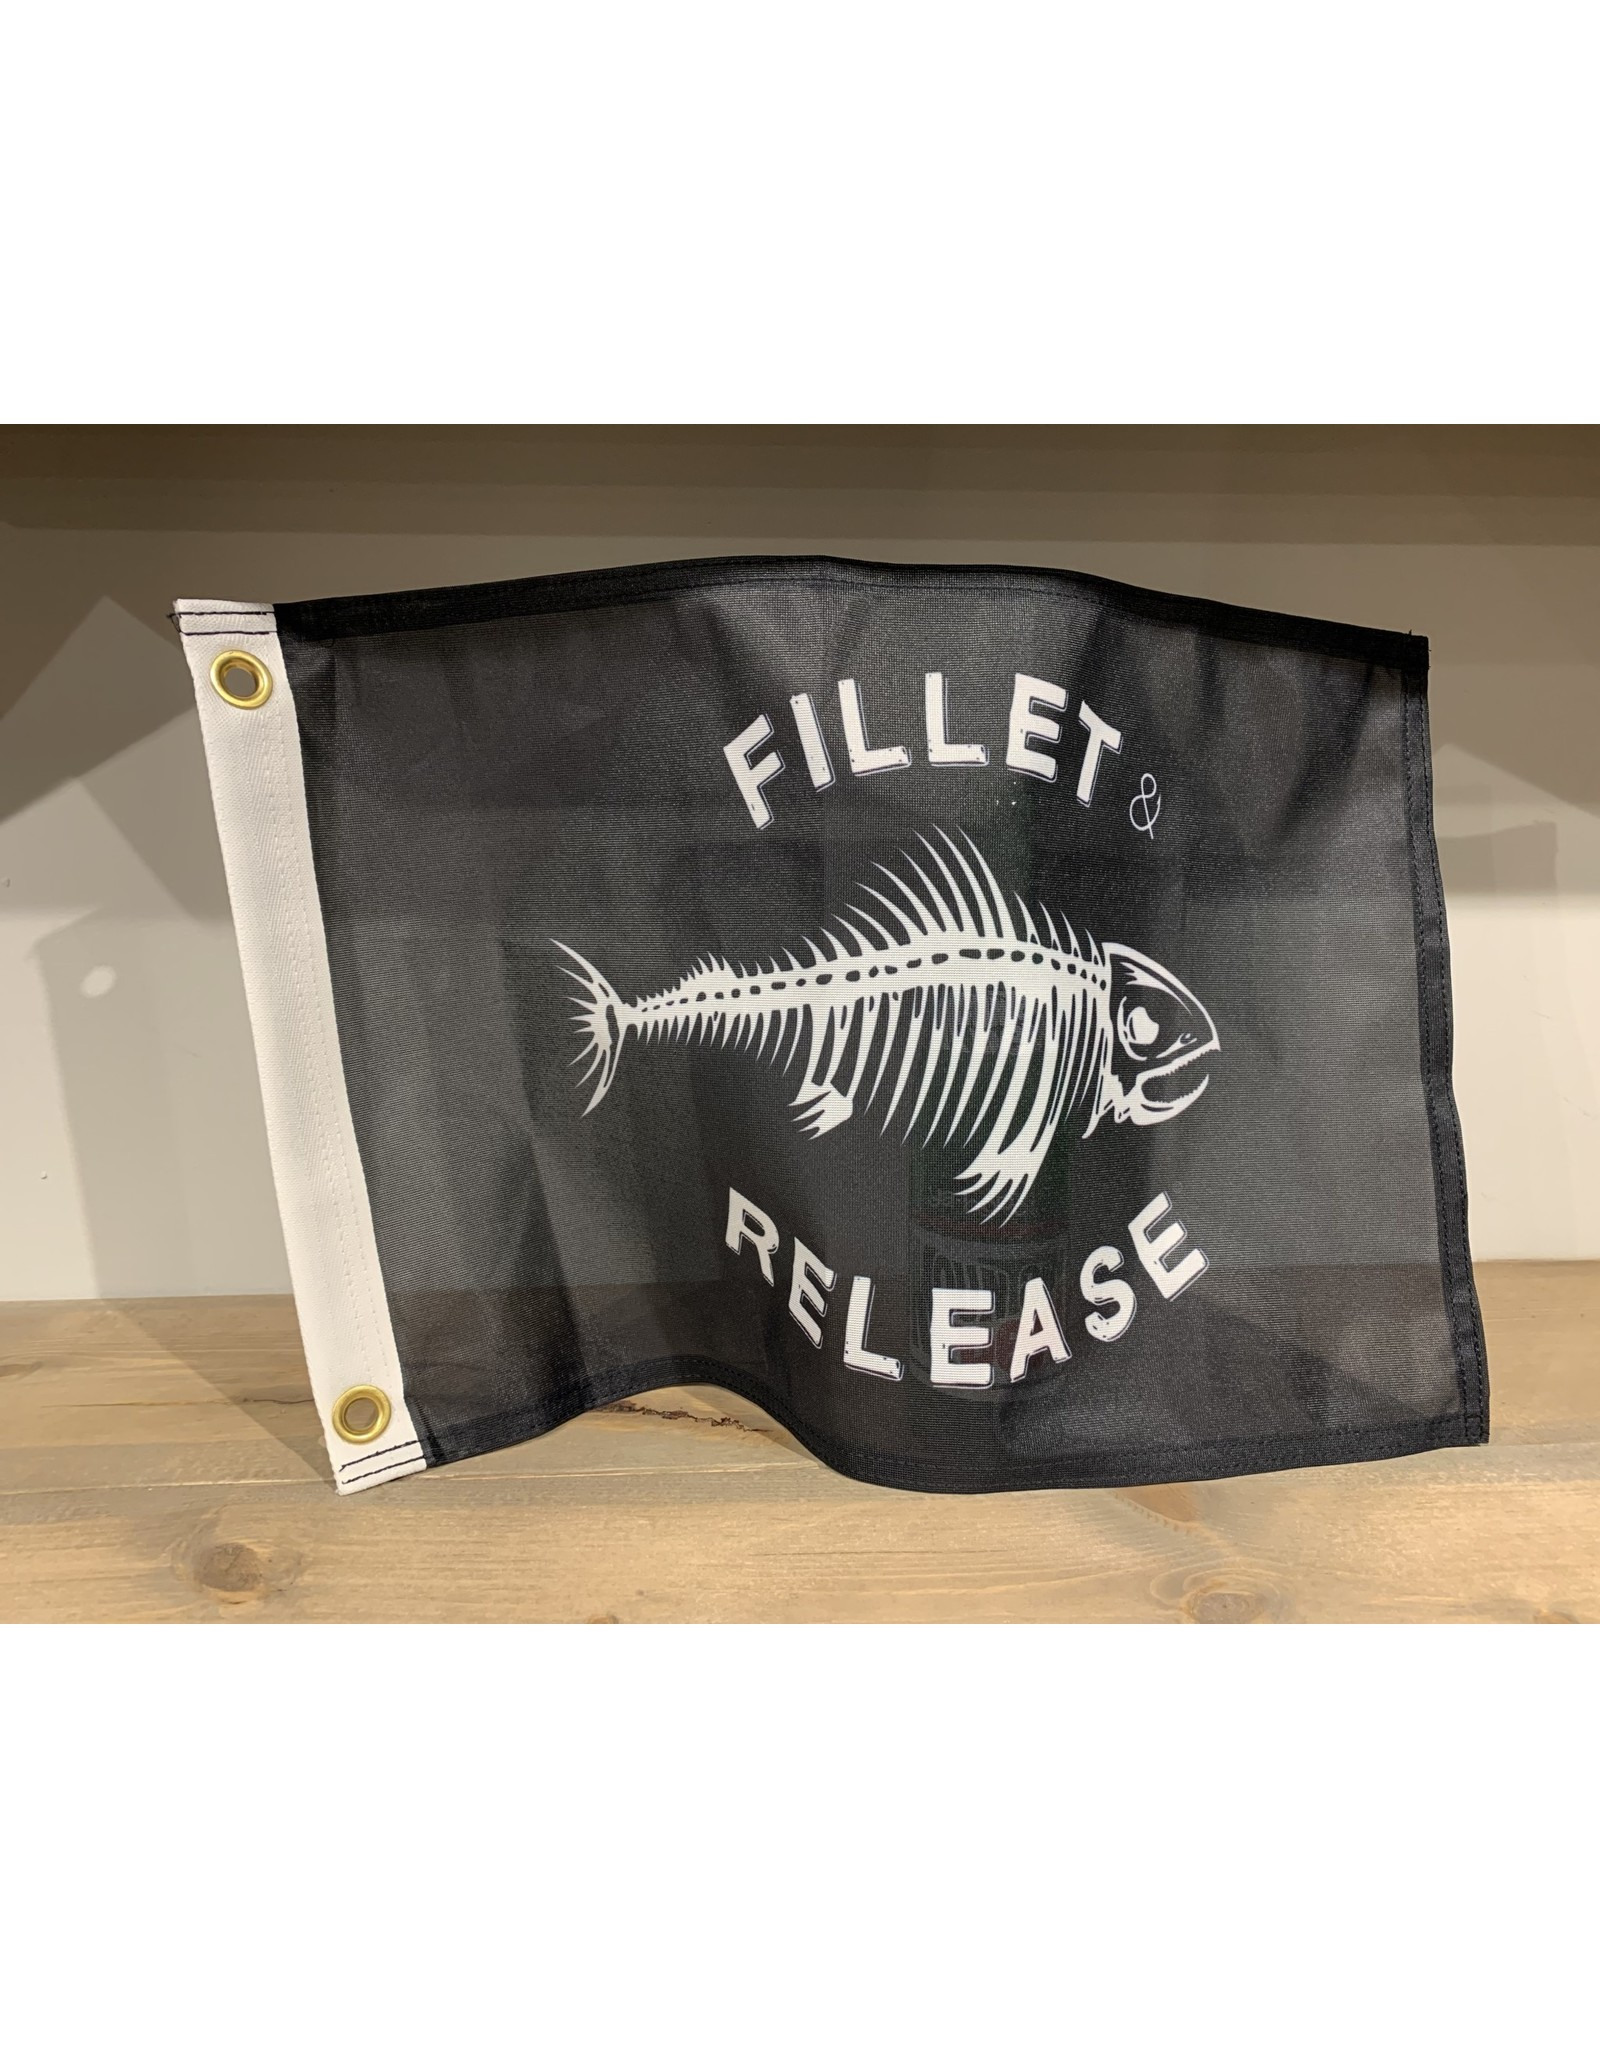 """FLAGS UNLIMITED FILLET & RELEASE FLAG 12""""X18"""""""